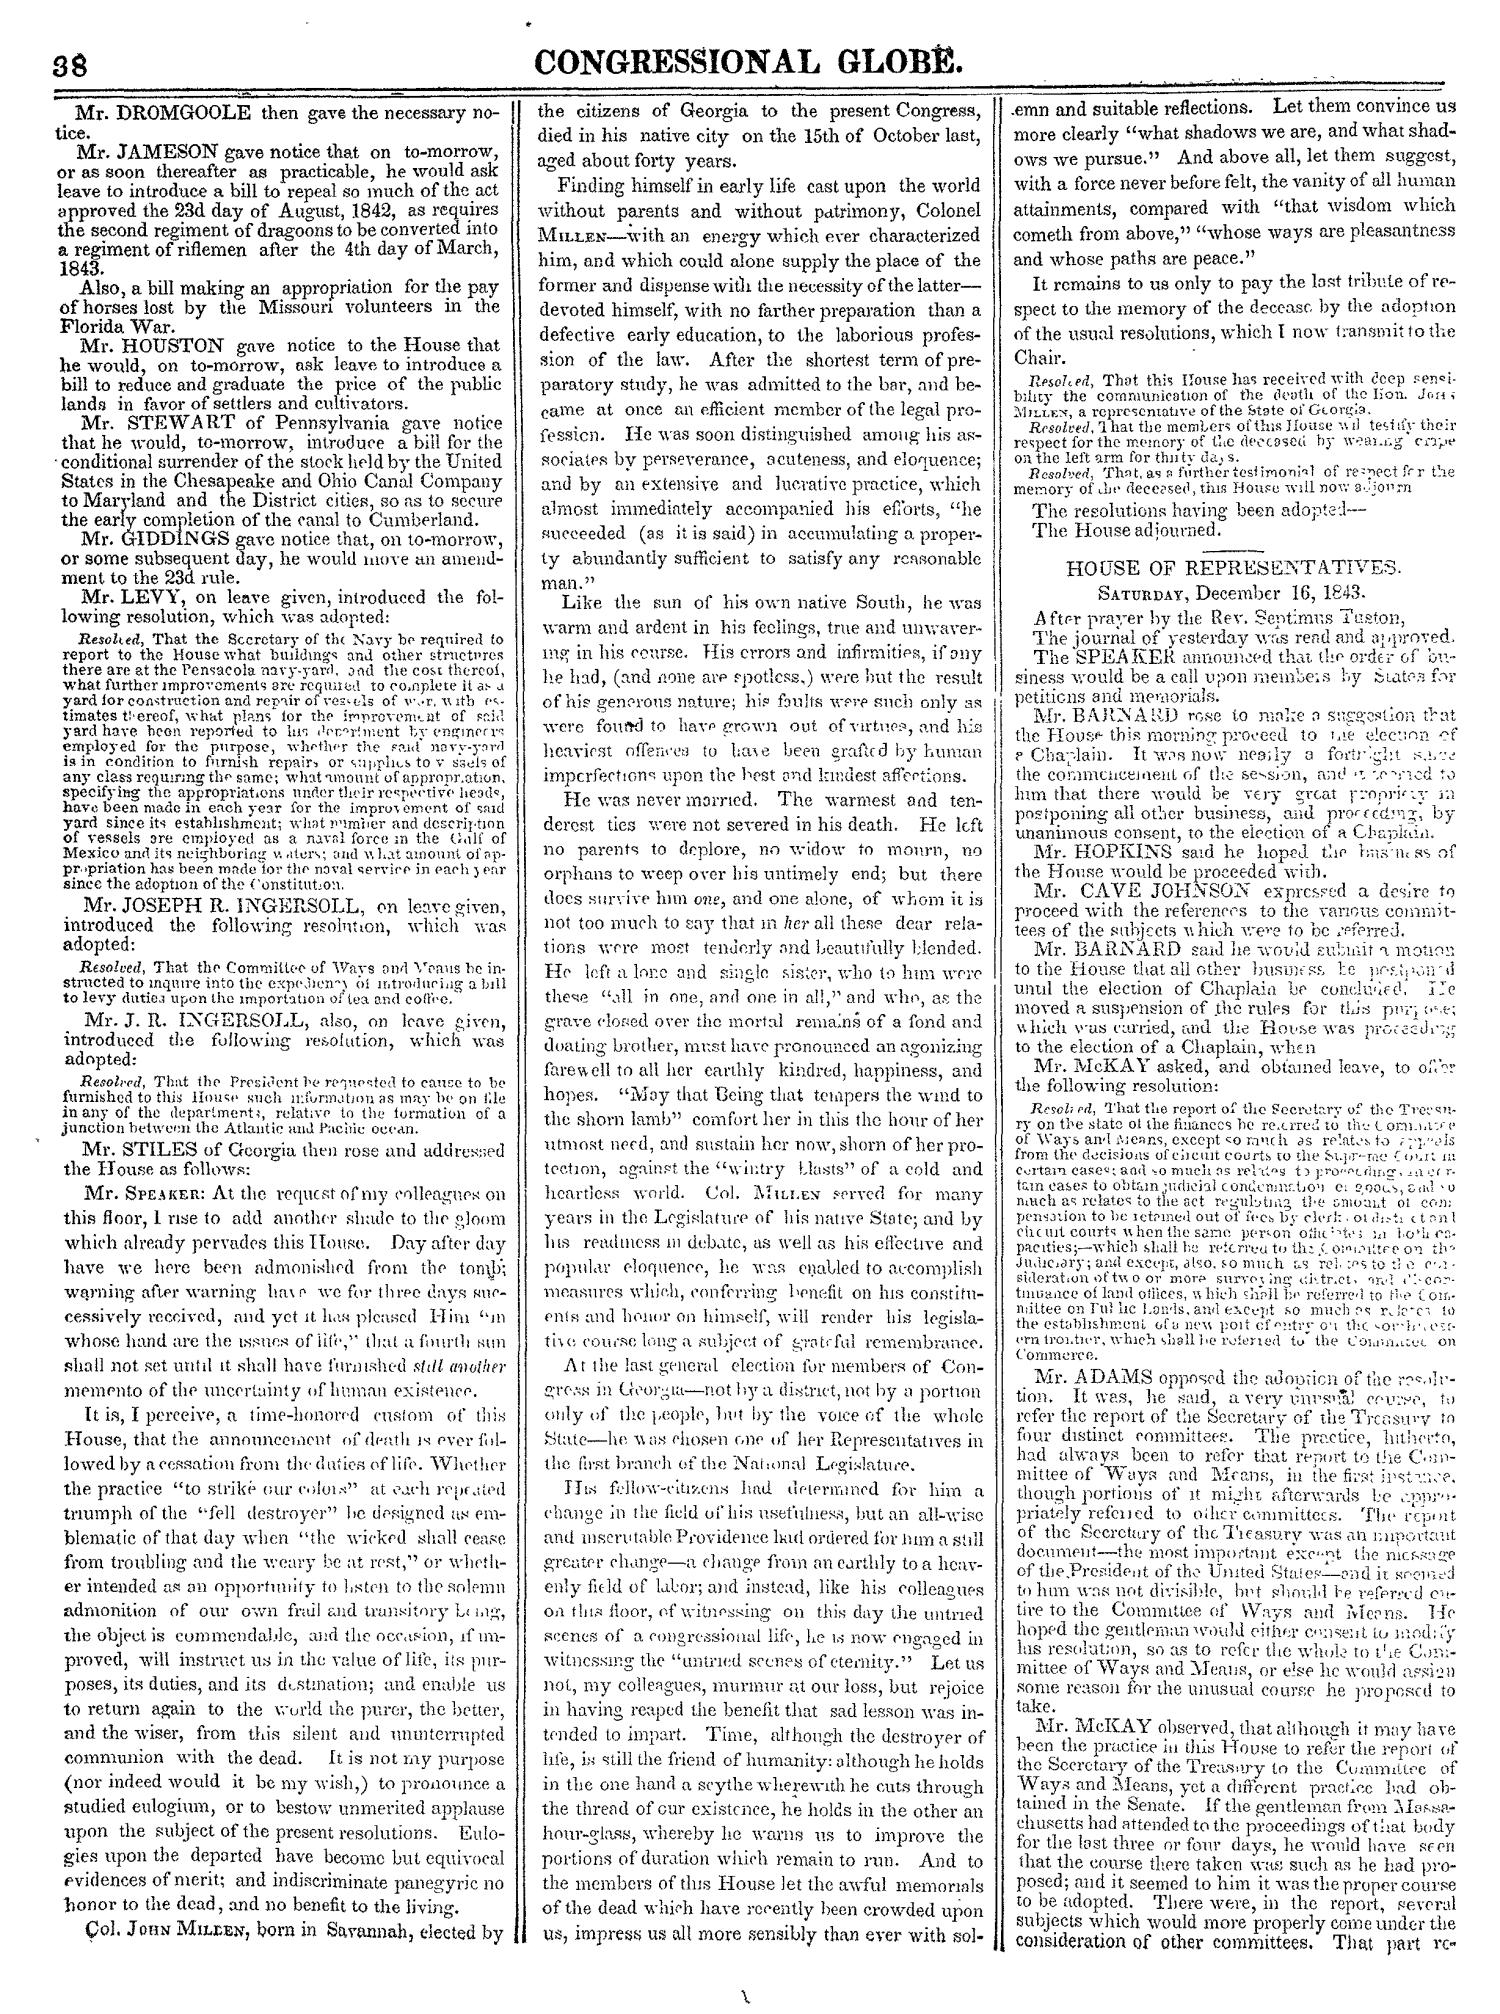 The Congressional Globe, Volume 13, Part 1: Twenty-Eighth Congress, First Session                                                                                                      38